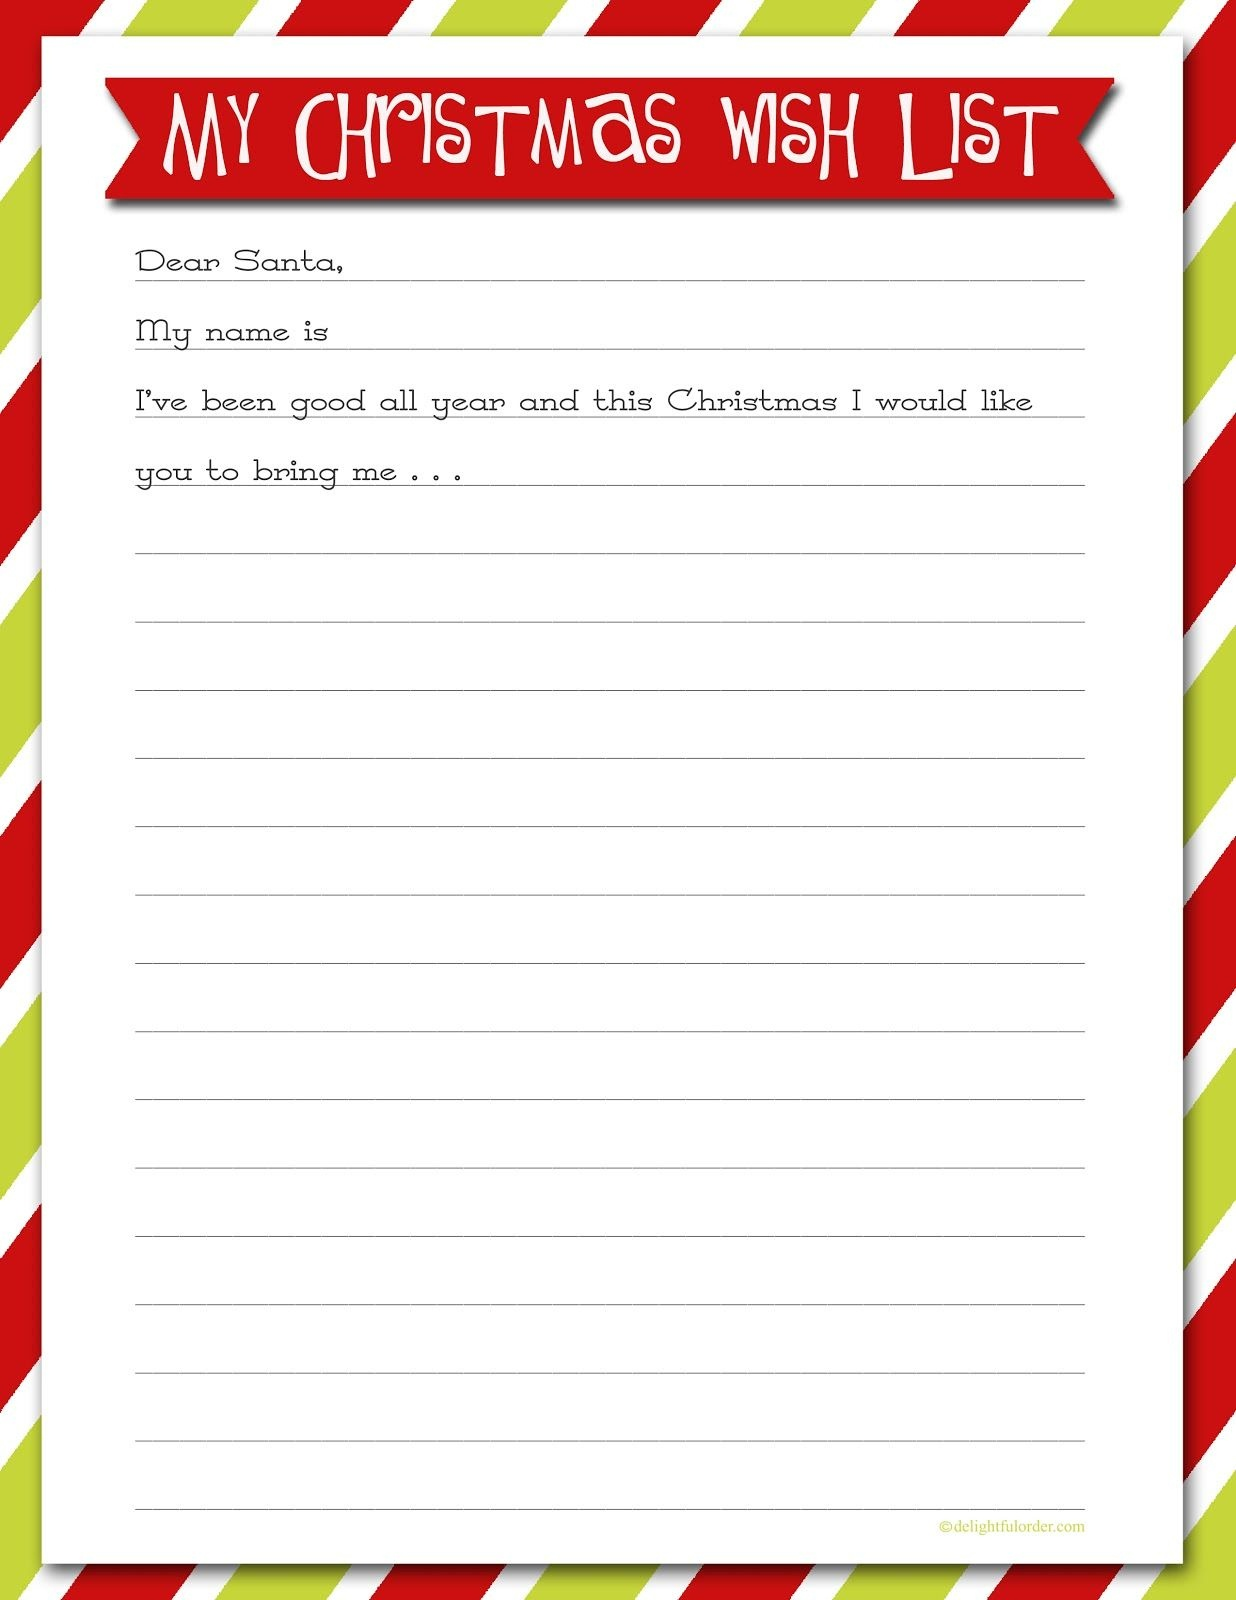 Christmas Wish List 2019.Free Printable Christmas List Free Printable